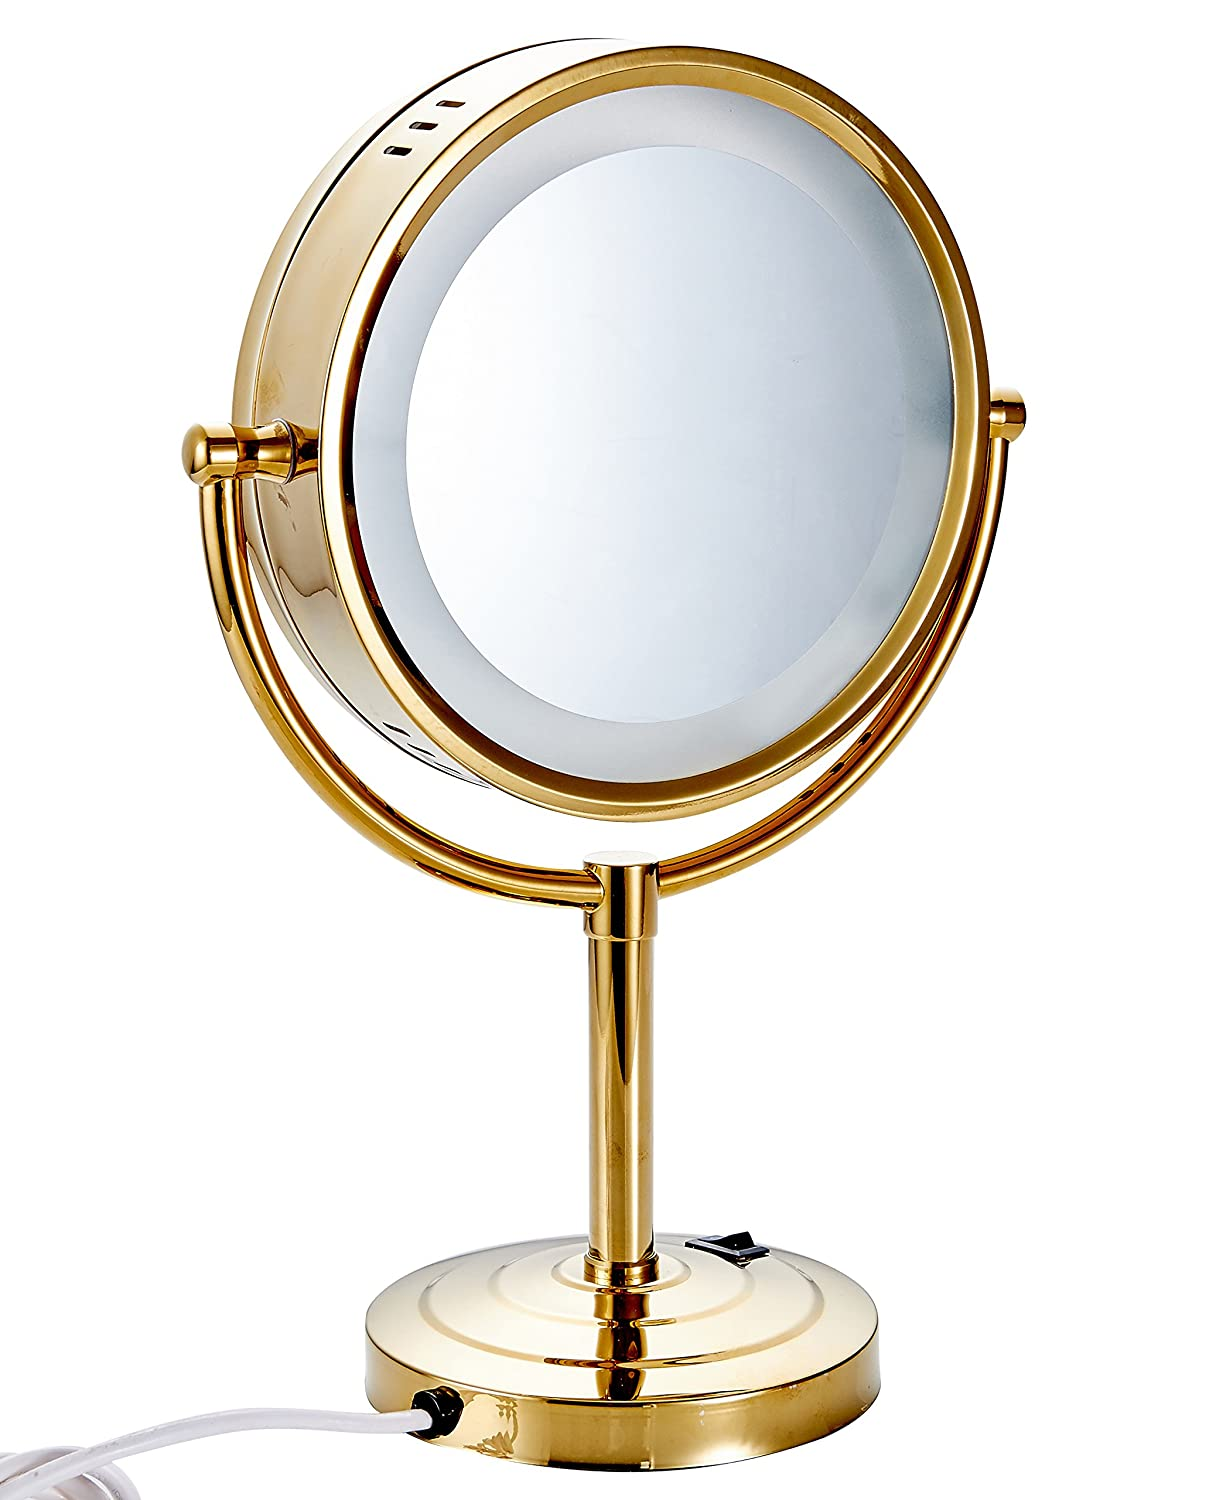 Cavoli 8.5 inch LED Makeup Mirror with 10x Magnification,Tabletop Two-sided,Gold Finish(8.5in,10x)